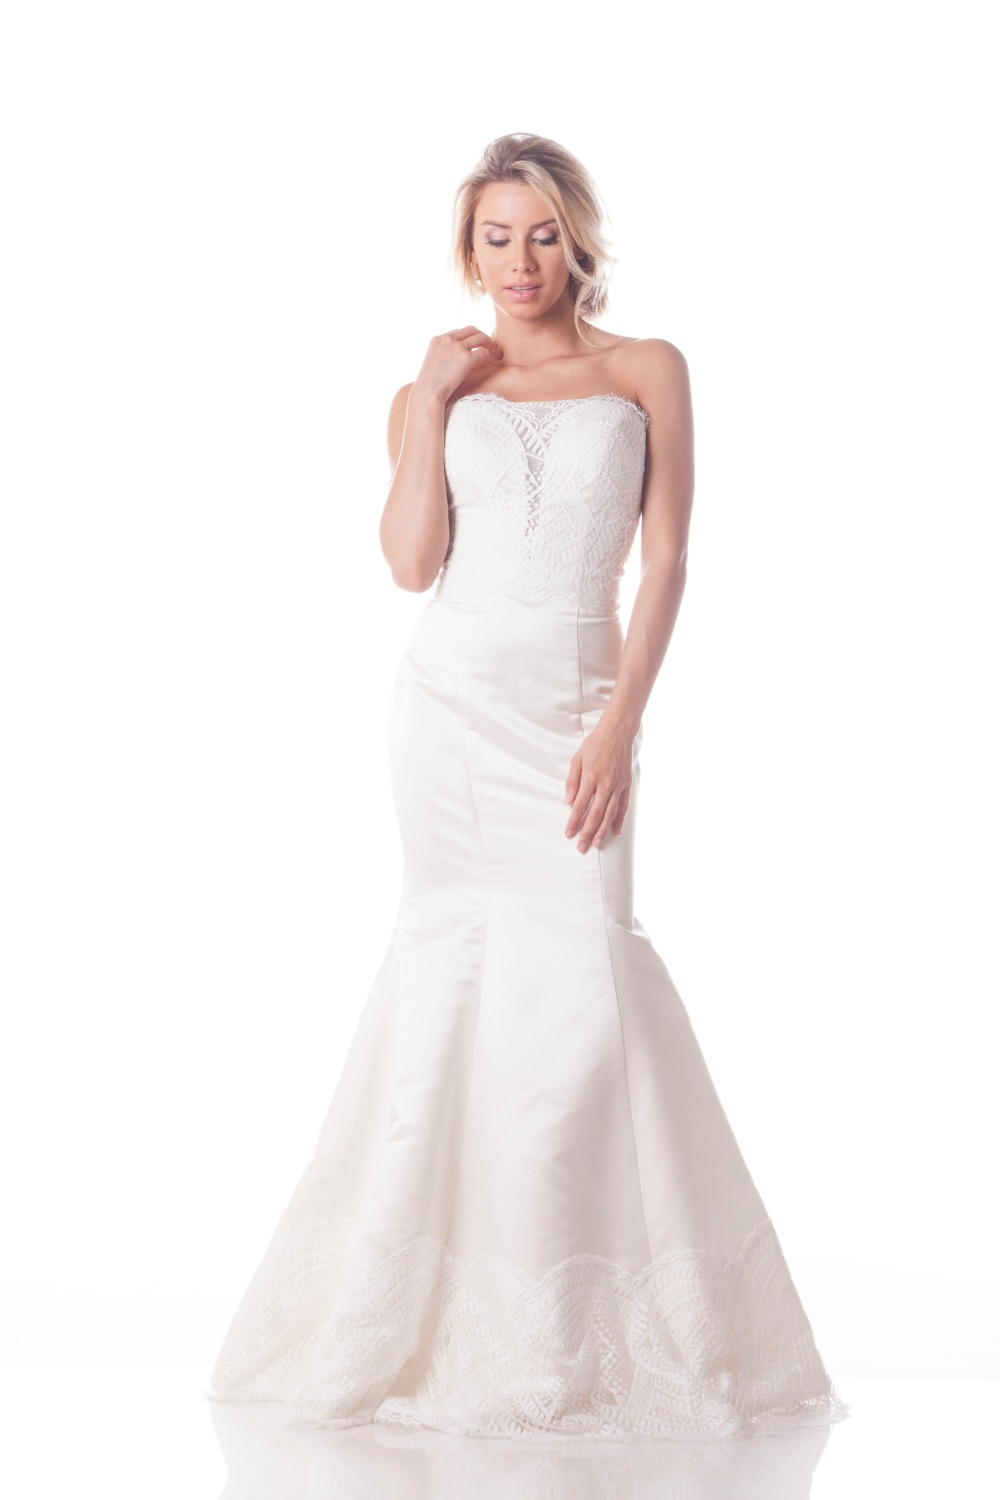 customize your own Olia Zavozina wedding gown